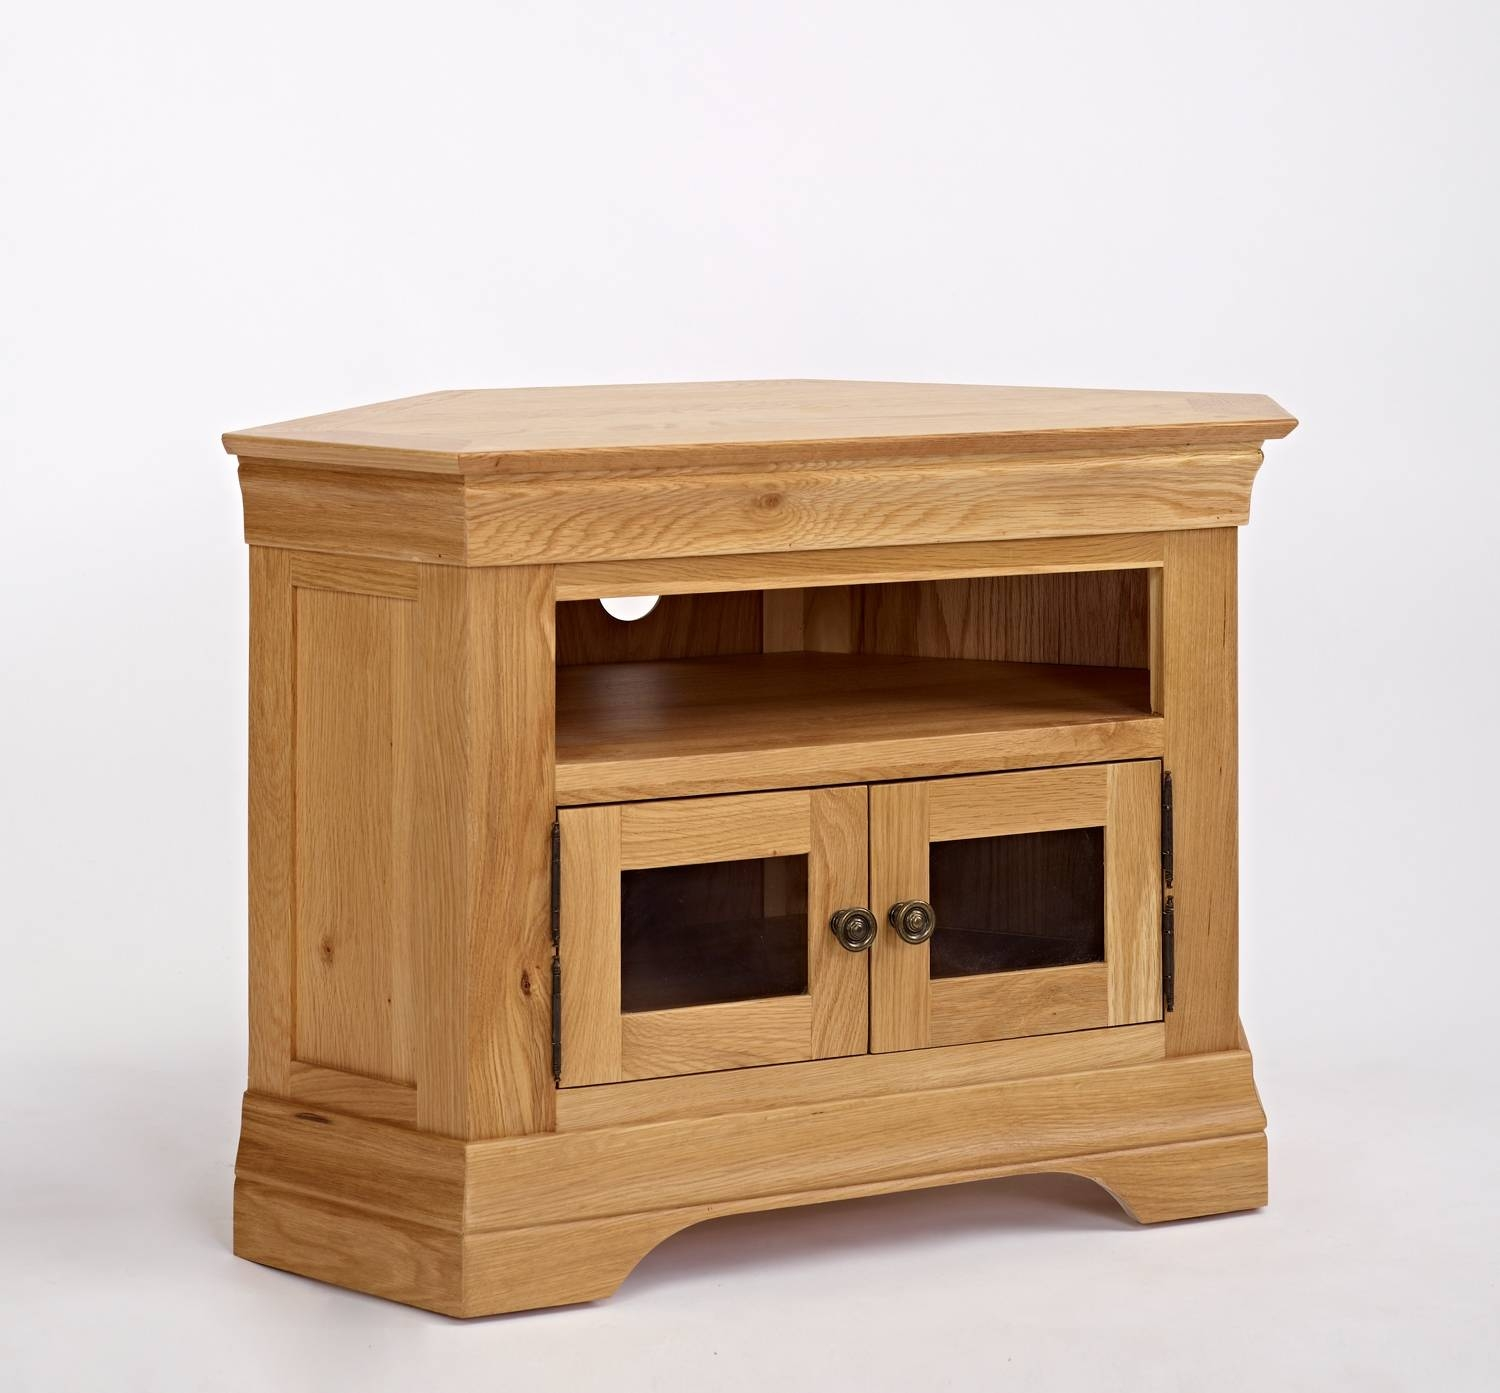 French Modern Oak Corner Tv Unit | Hampshire Furniture inside Small Oak Corner Tv Stands (Image 2 of 15)